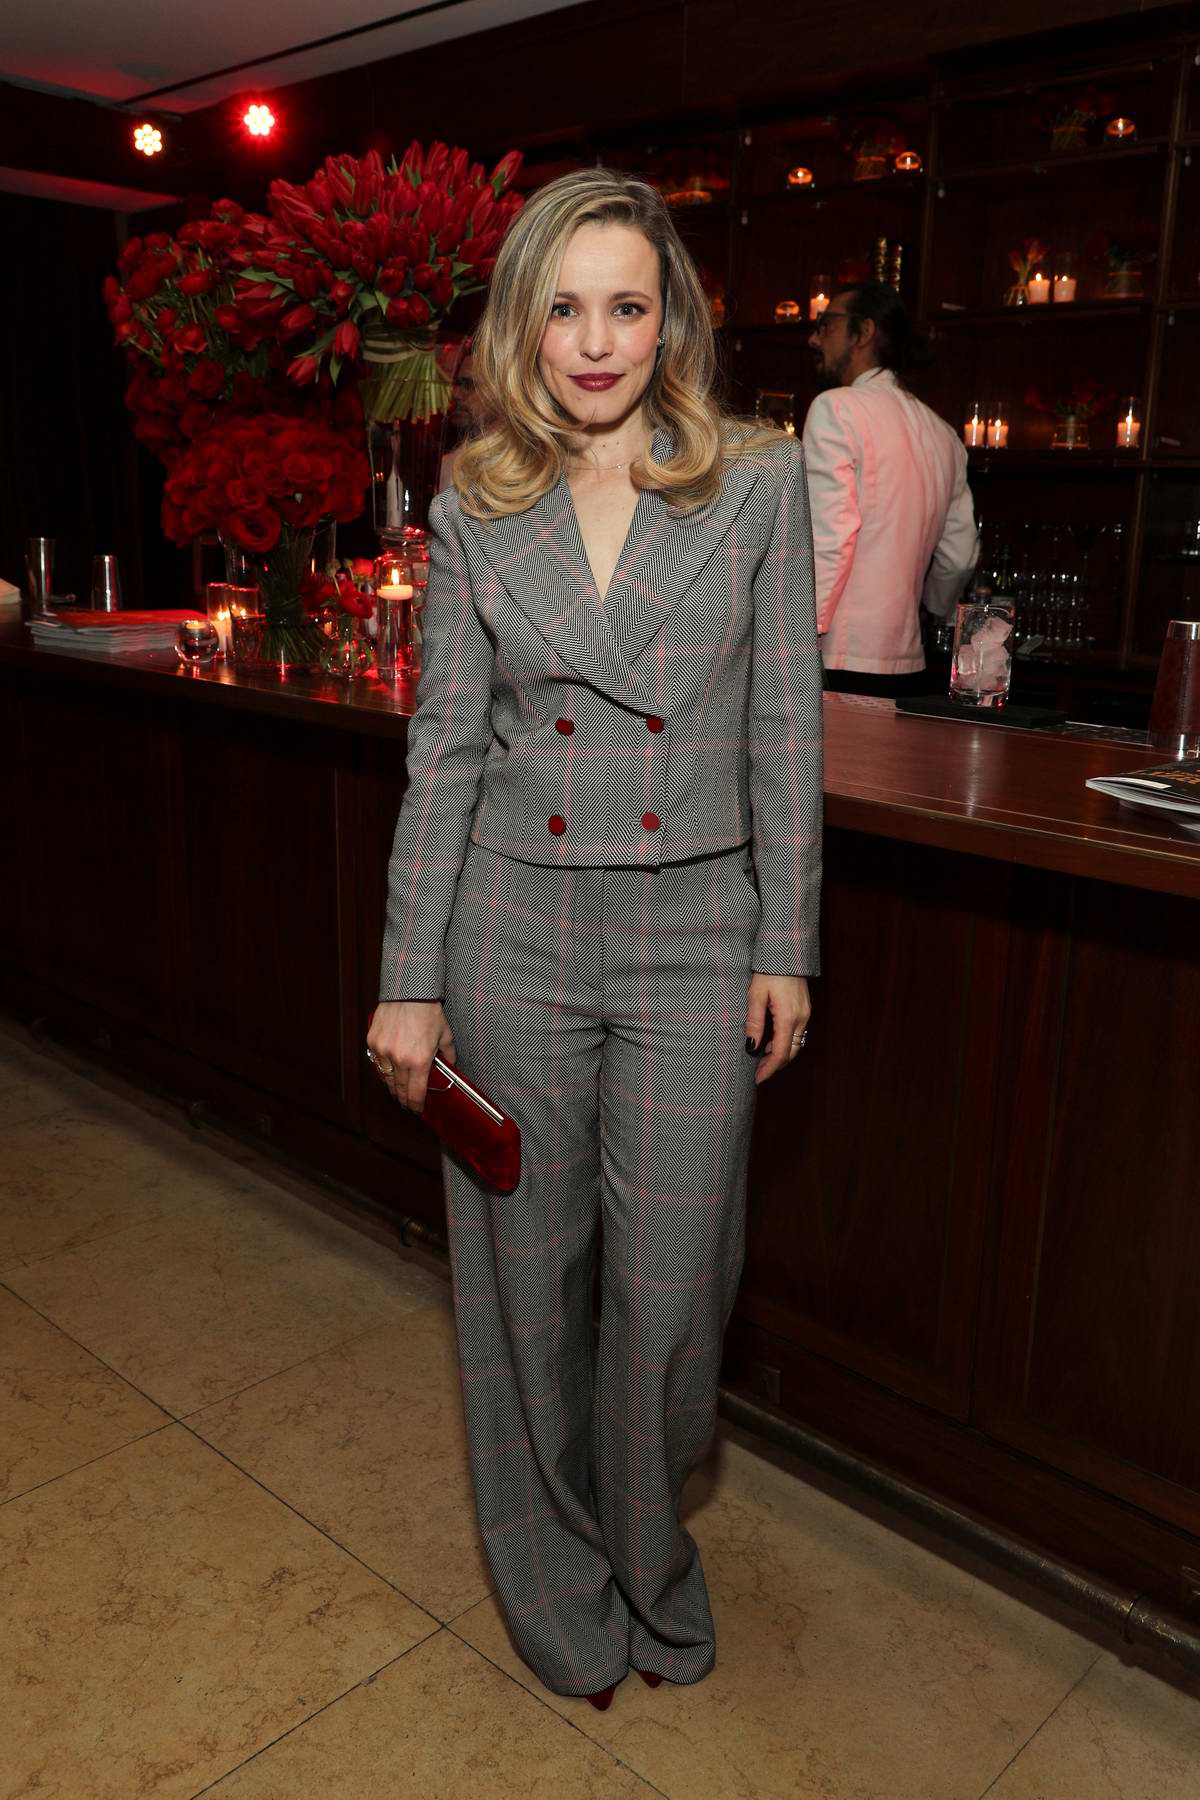 Rachel McAdams attends the Variety x Armani Makeup Artistry Dinner at Sunset Tower in Los Angeles